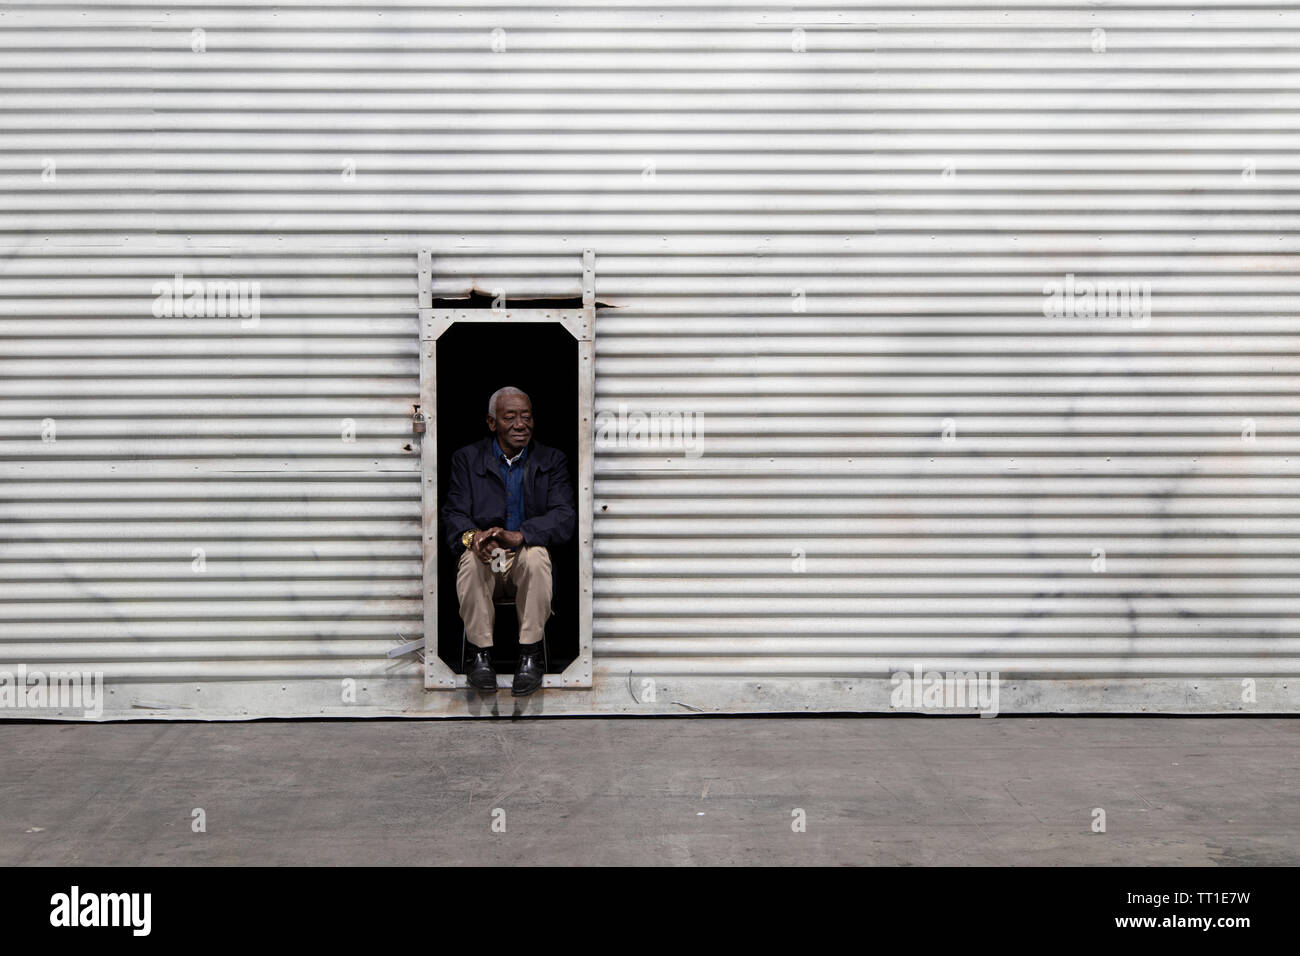 The Cuban man Raul Portillo Sama sits in a door frame in a corrugated sheet metal wall, behind which are stacks of eggs waiting to be sold. The performance installation is the work of Kosovar Albanian artist Sislej Xhafa, and is prominently on display at the 49th annual Art Basel Art Fair in Basel. - Stock Image